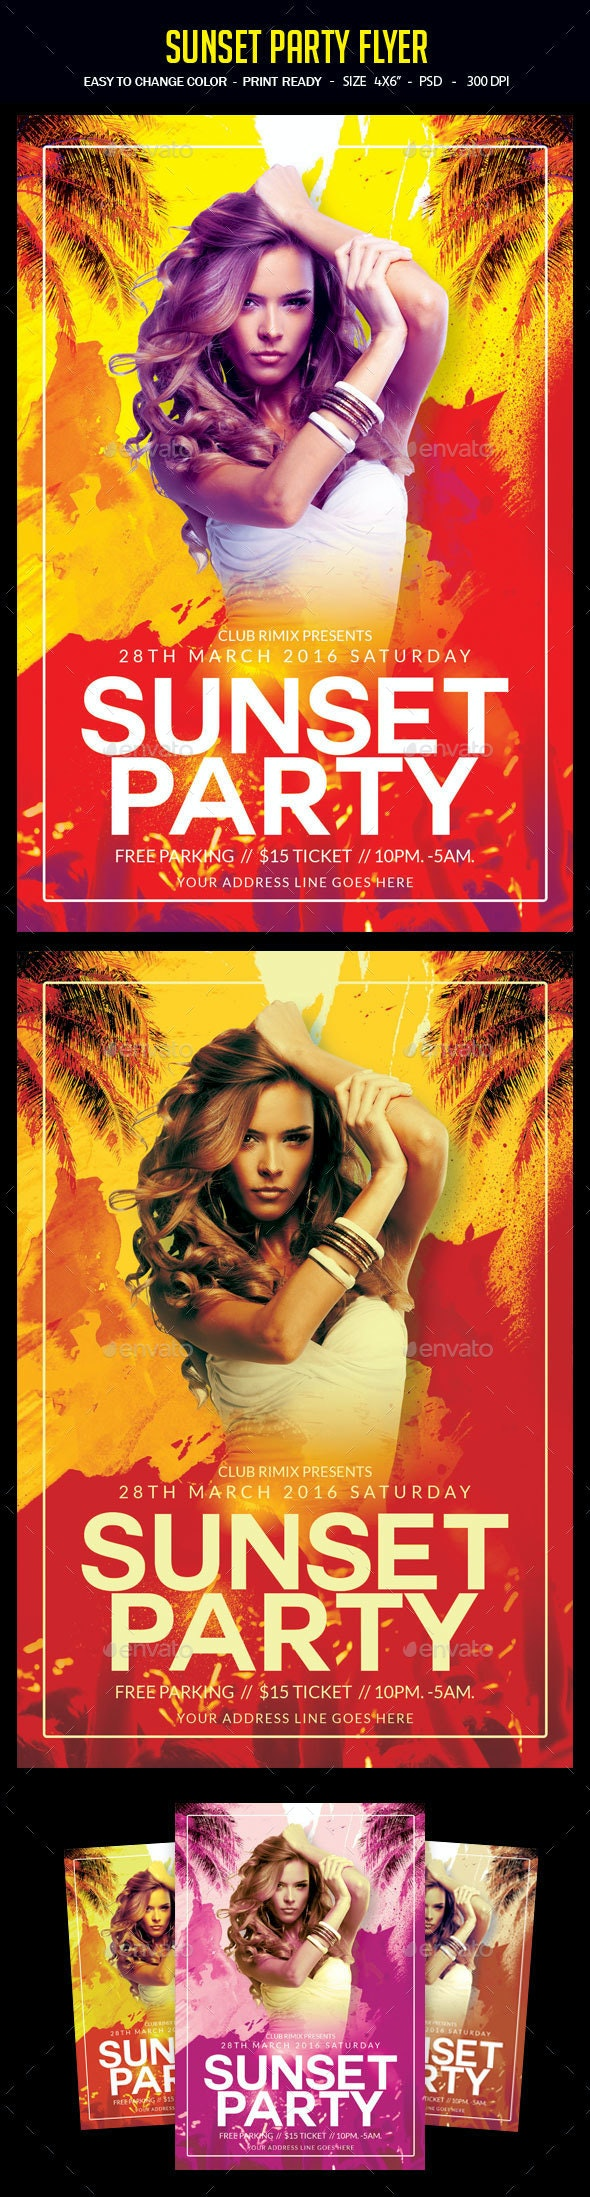 Sunset Party Flyer - Clubs & Parties Events